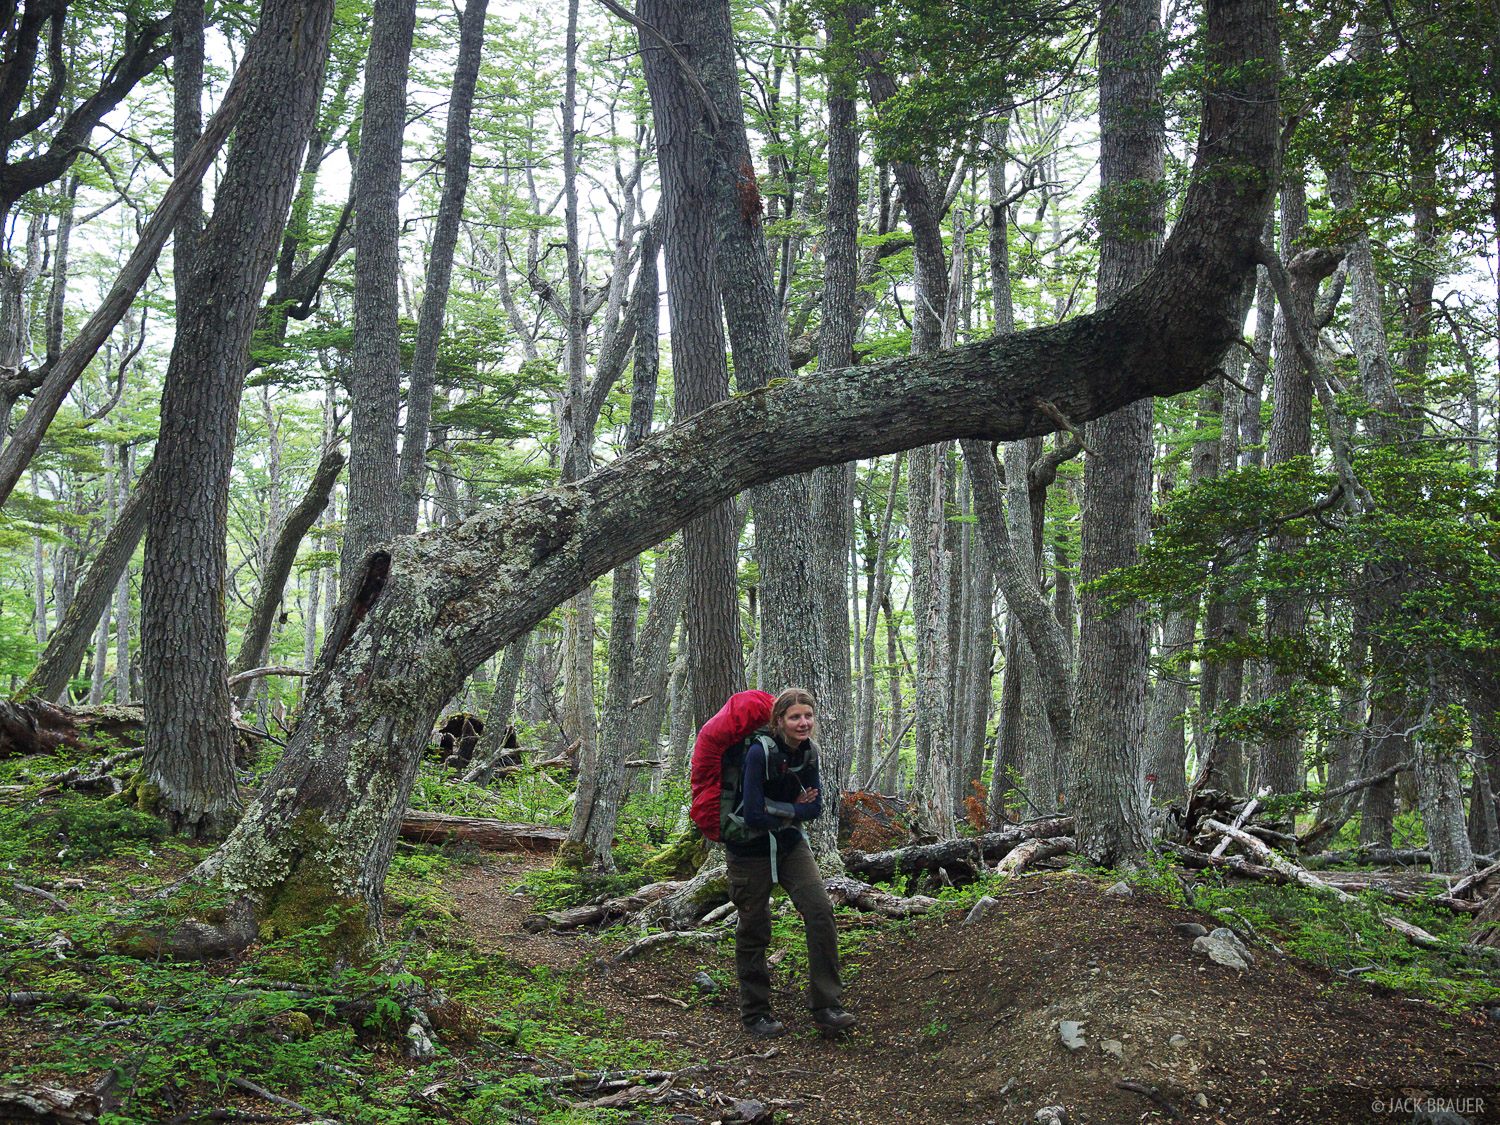 Chile, Isla Navarino, South America, Tierra del Fuego, forest, hiking, photo